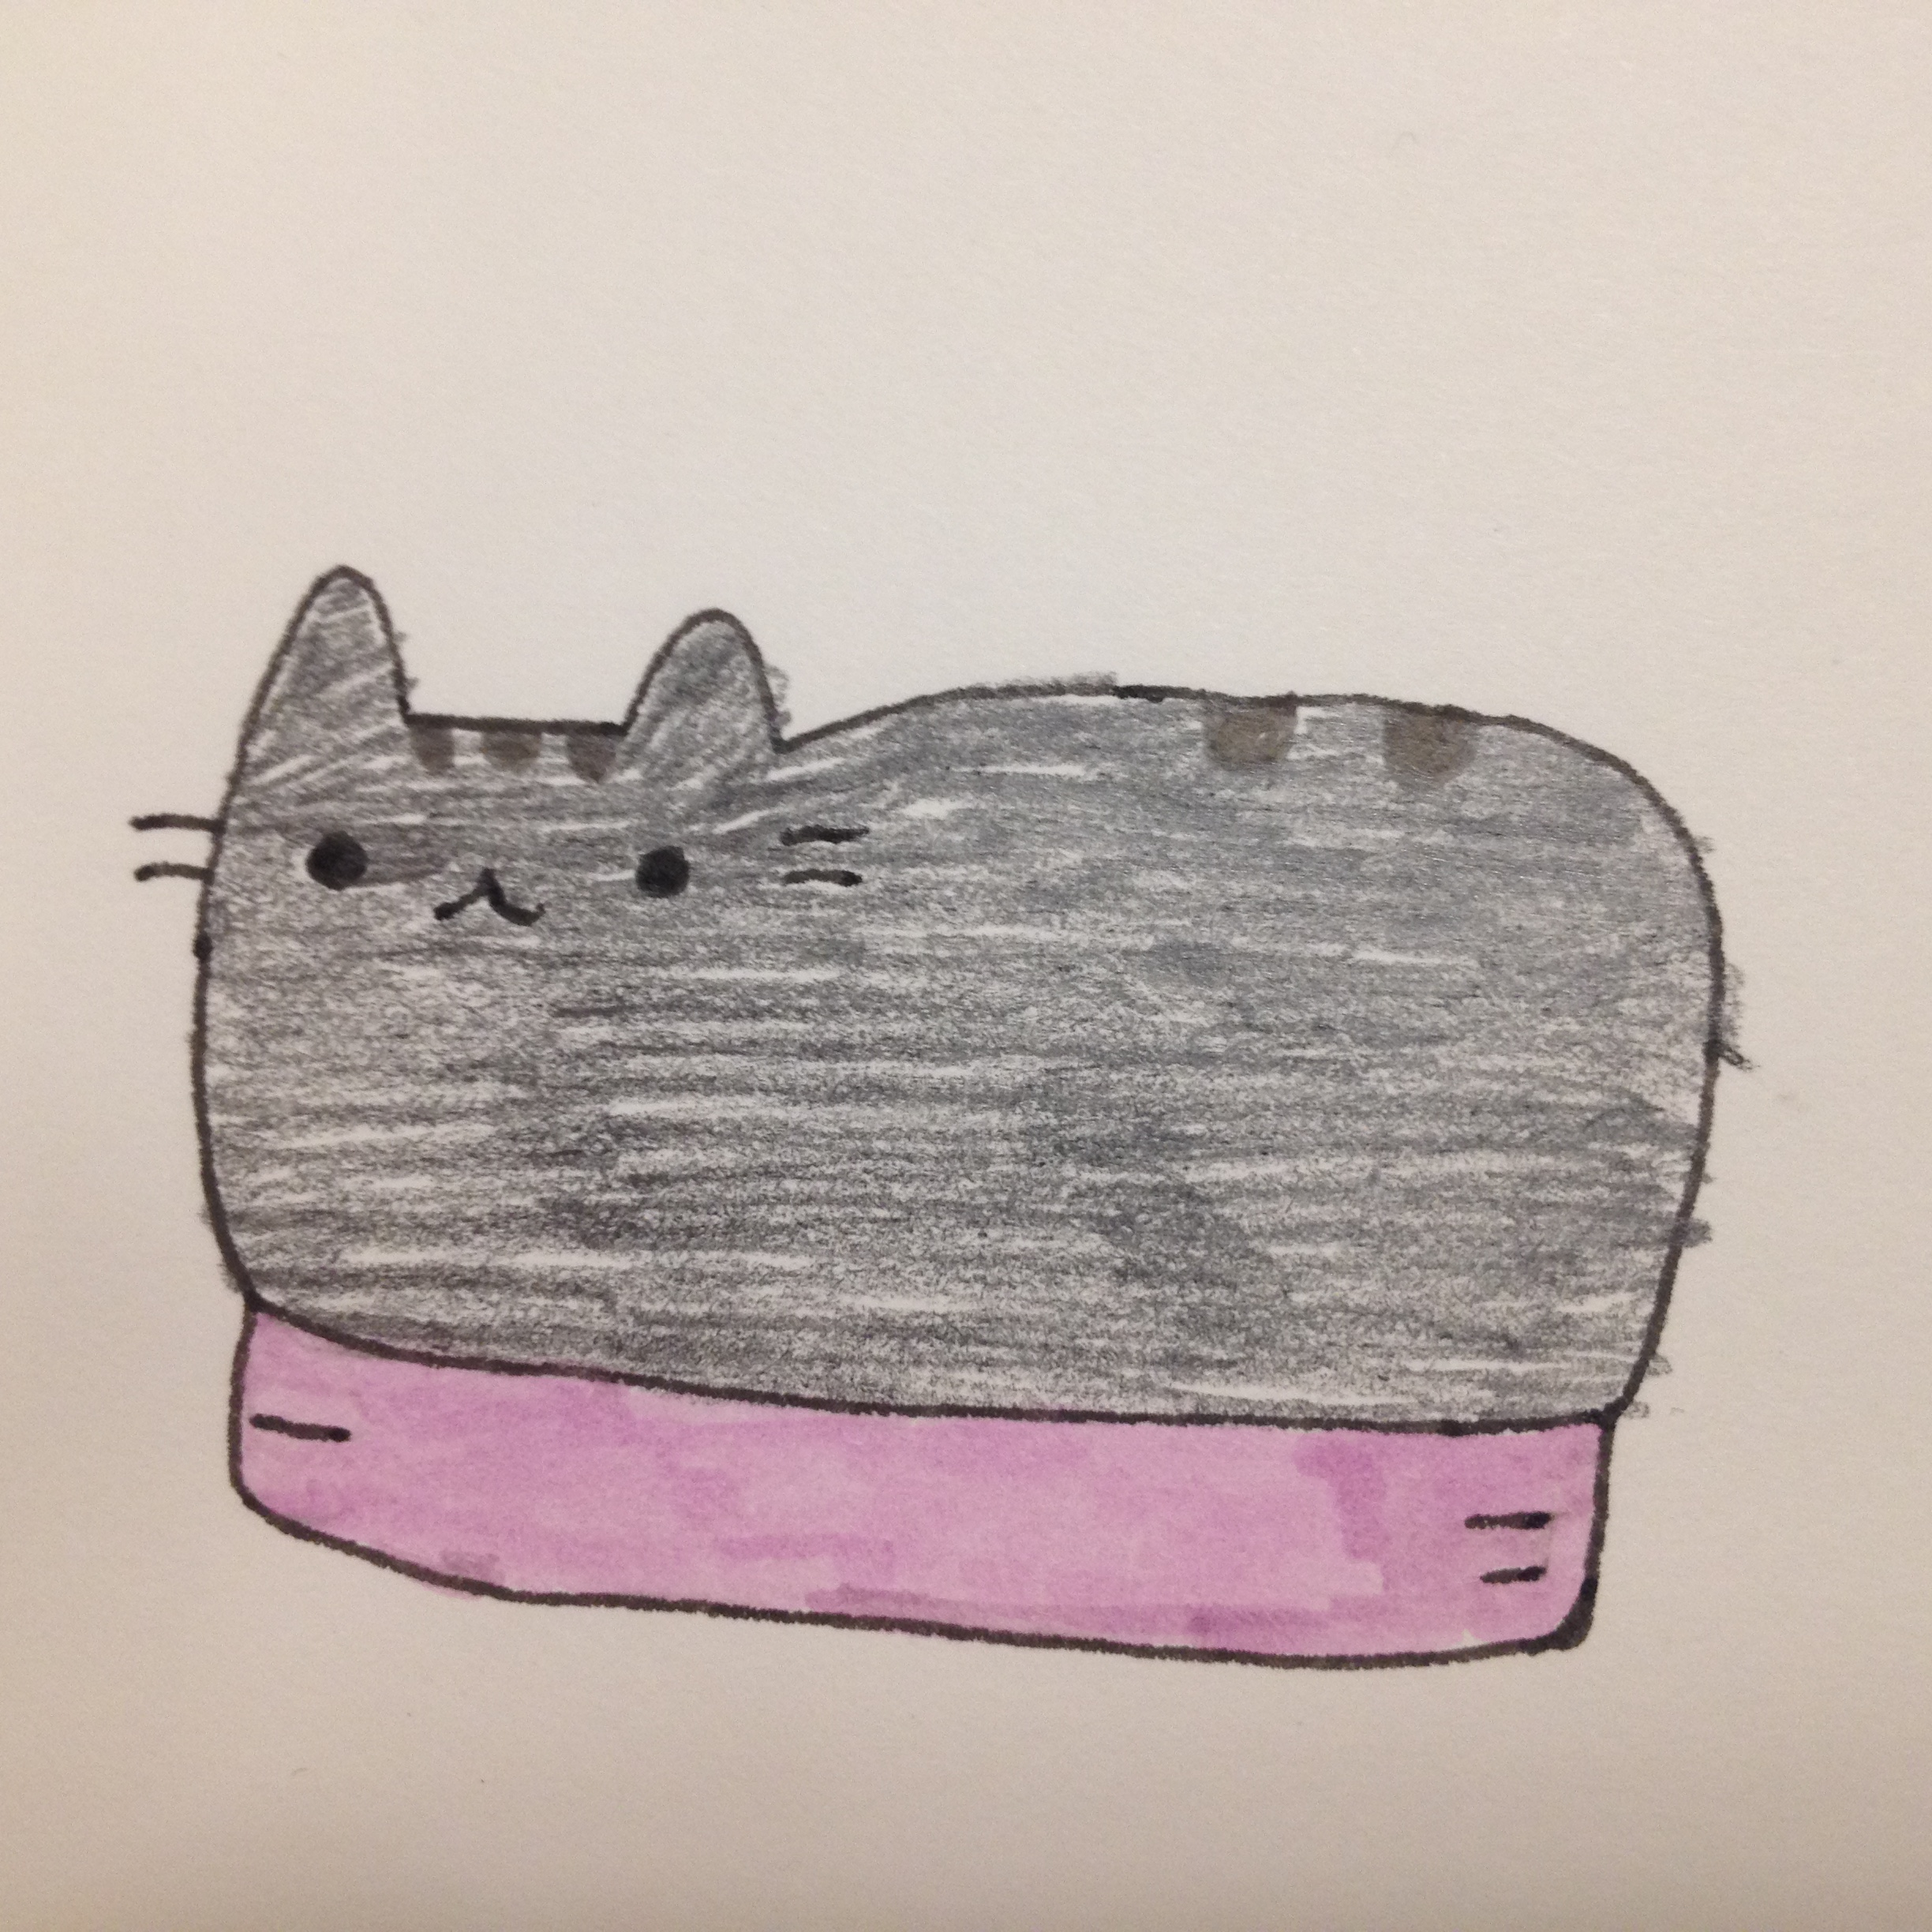 Pusheen the Cat!